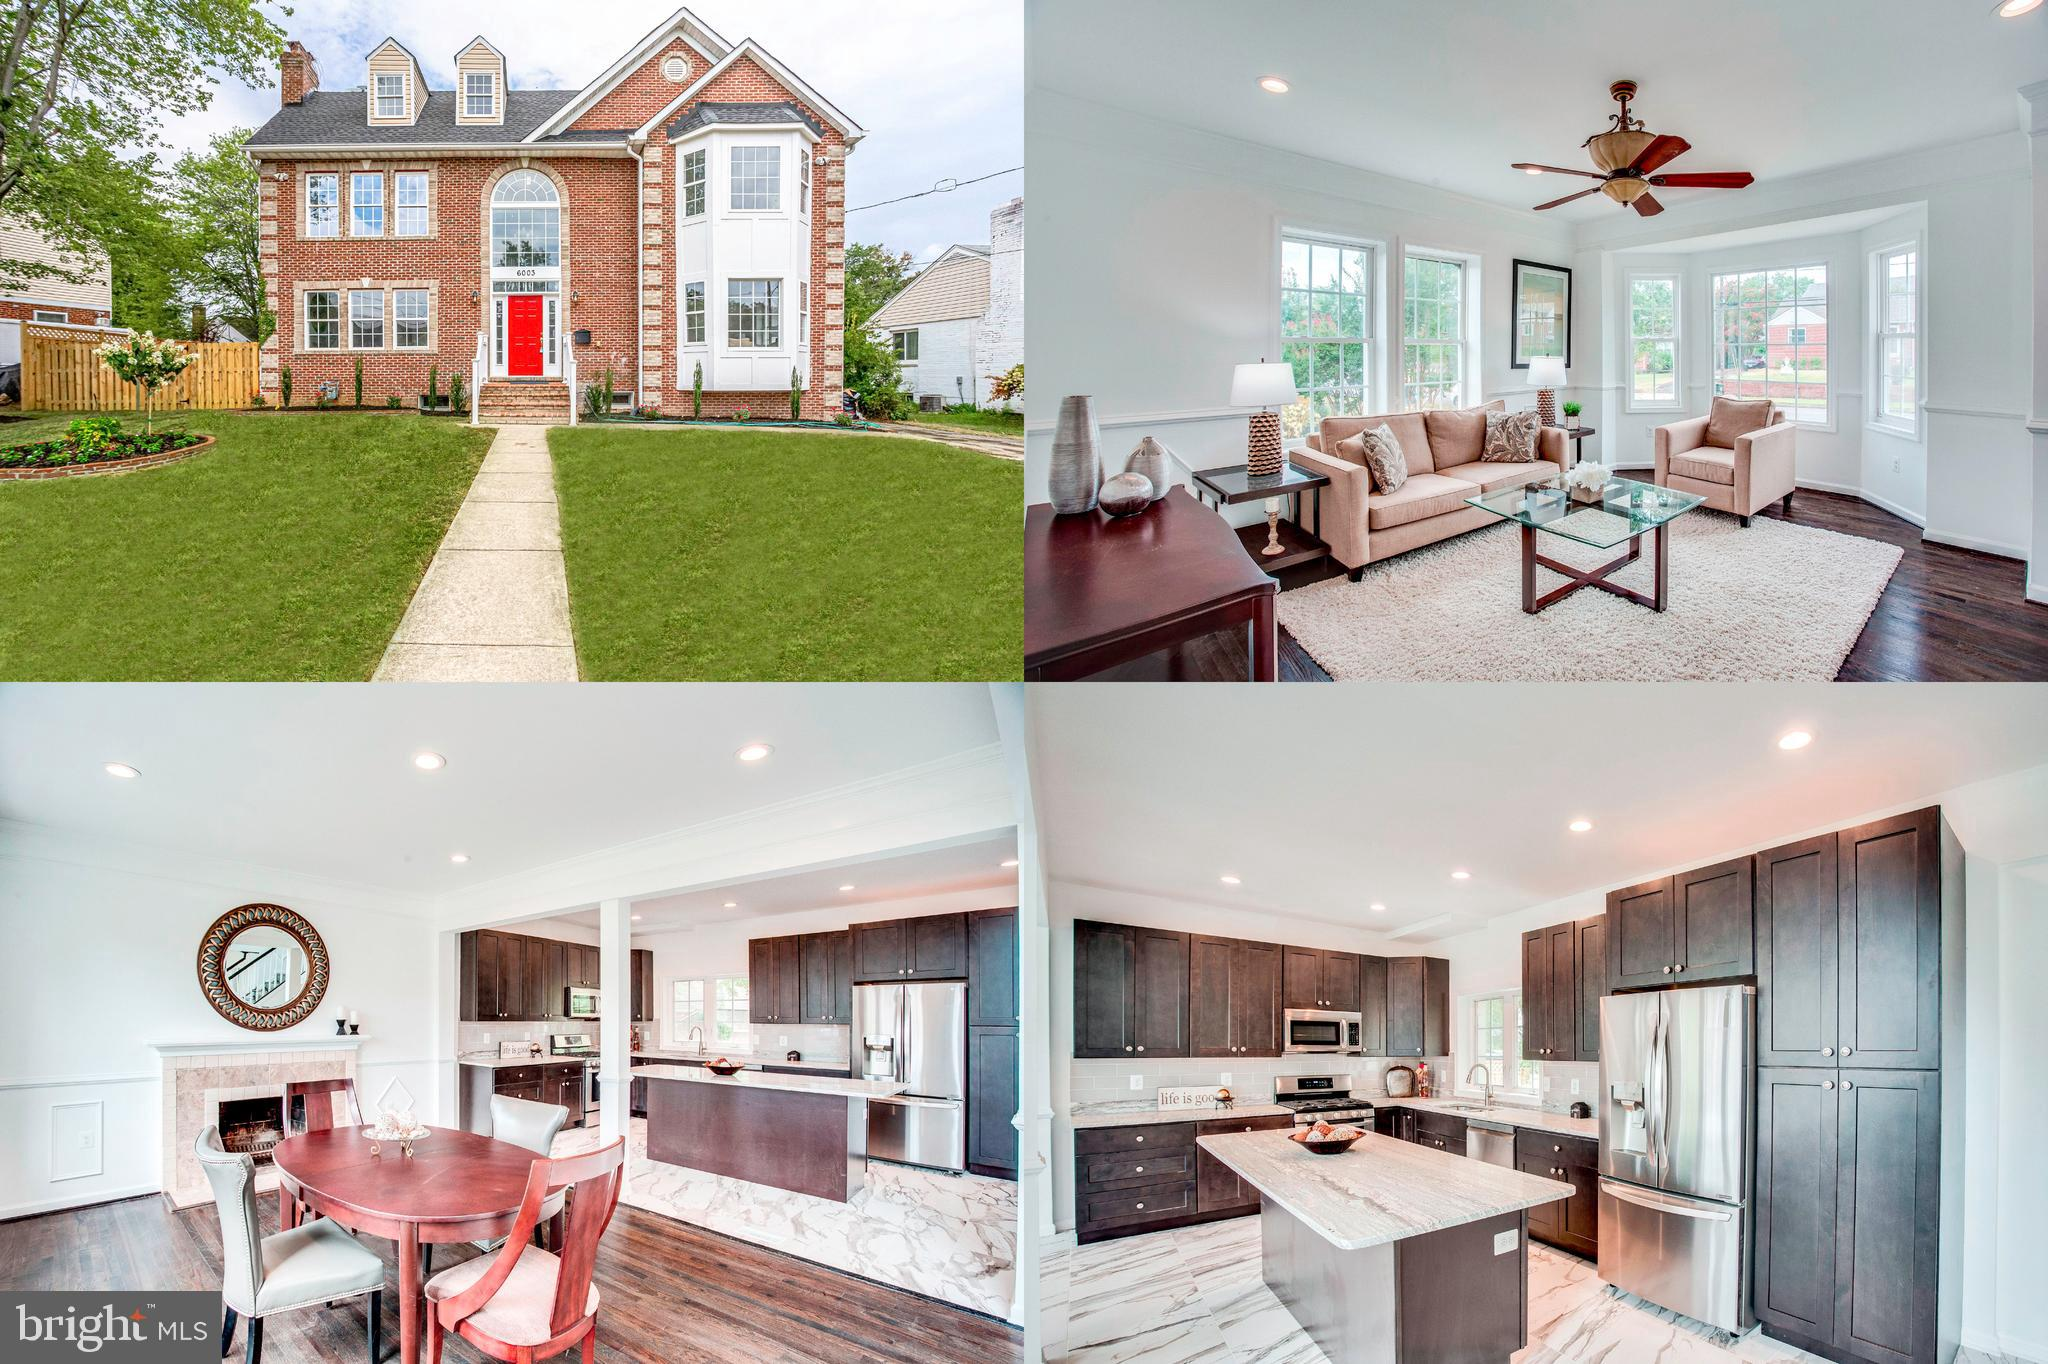 Only 3 lights from DC.. 495 and 395 appx 2miles. Need more  room????  This newly renovated home features 8 bedrooms, 5 full baths, 1 half bath, 3 living areas, Dining room, Kitchen and room for additional kitchen/laundry in basement.  Roof 2009, new 70 gallon Water Heater, 1 new AC heat pump. New windows, tile, fixtures ceiling fans, baths, kitchen, flooring, painting, carpet and tons of recessed lighting.  Conveniently located near shopping and major transportation.  If you need space under 1,000,000 then this home is for you!